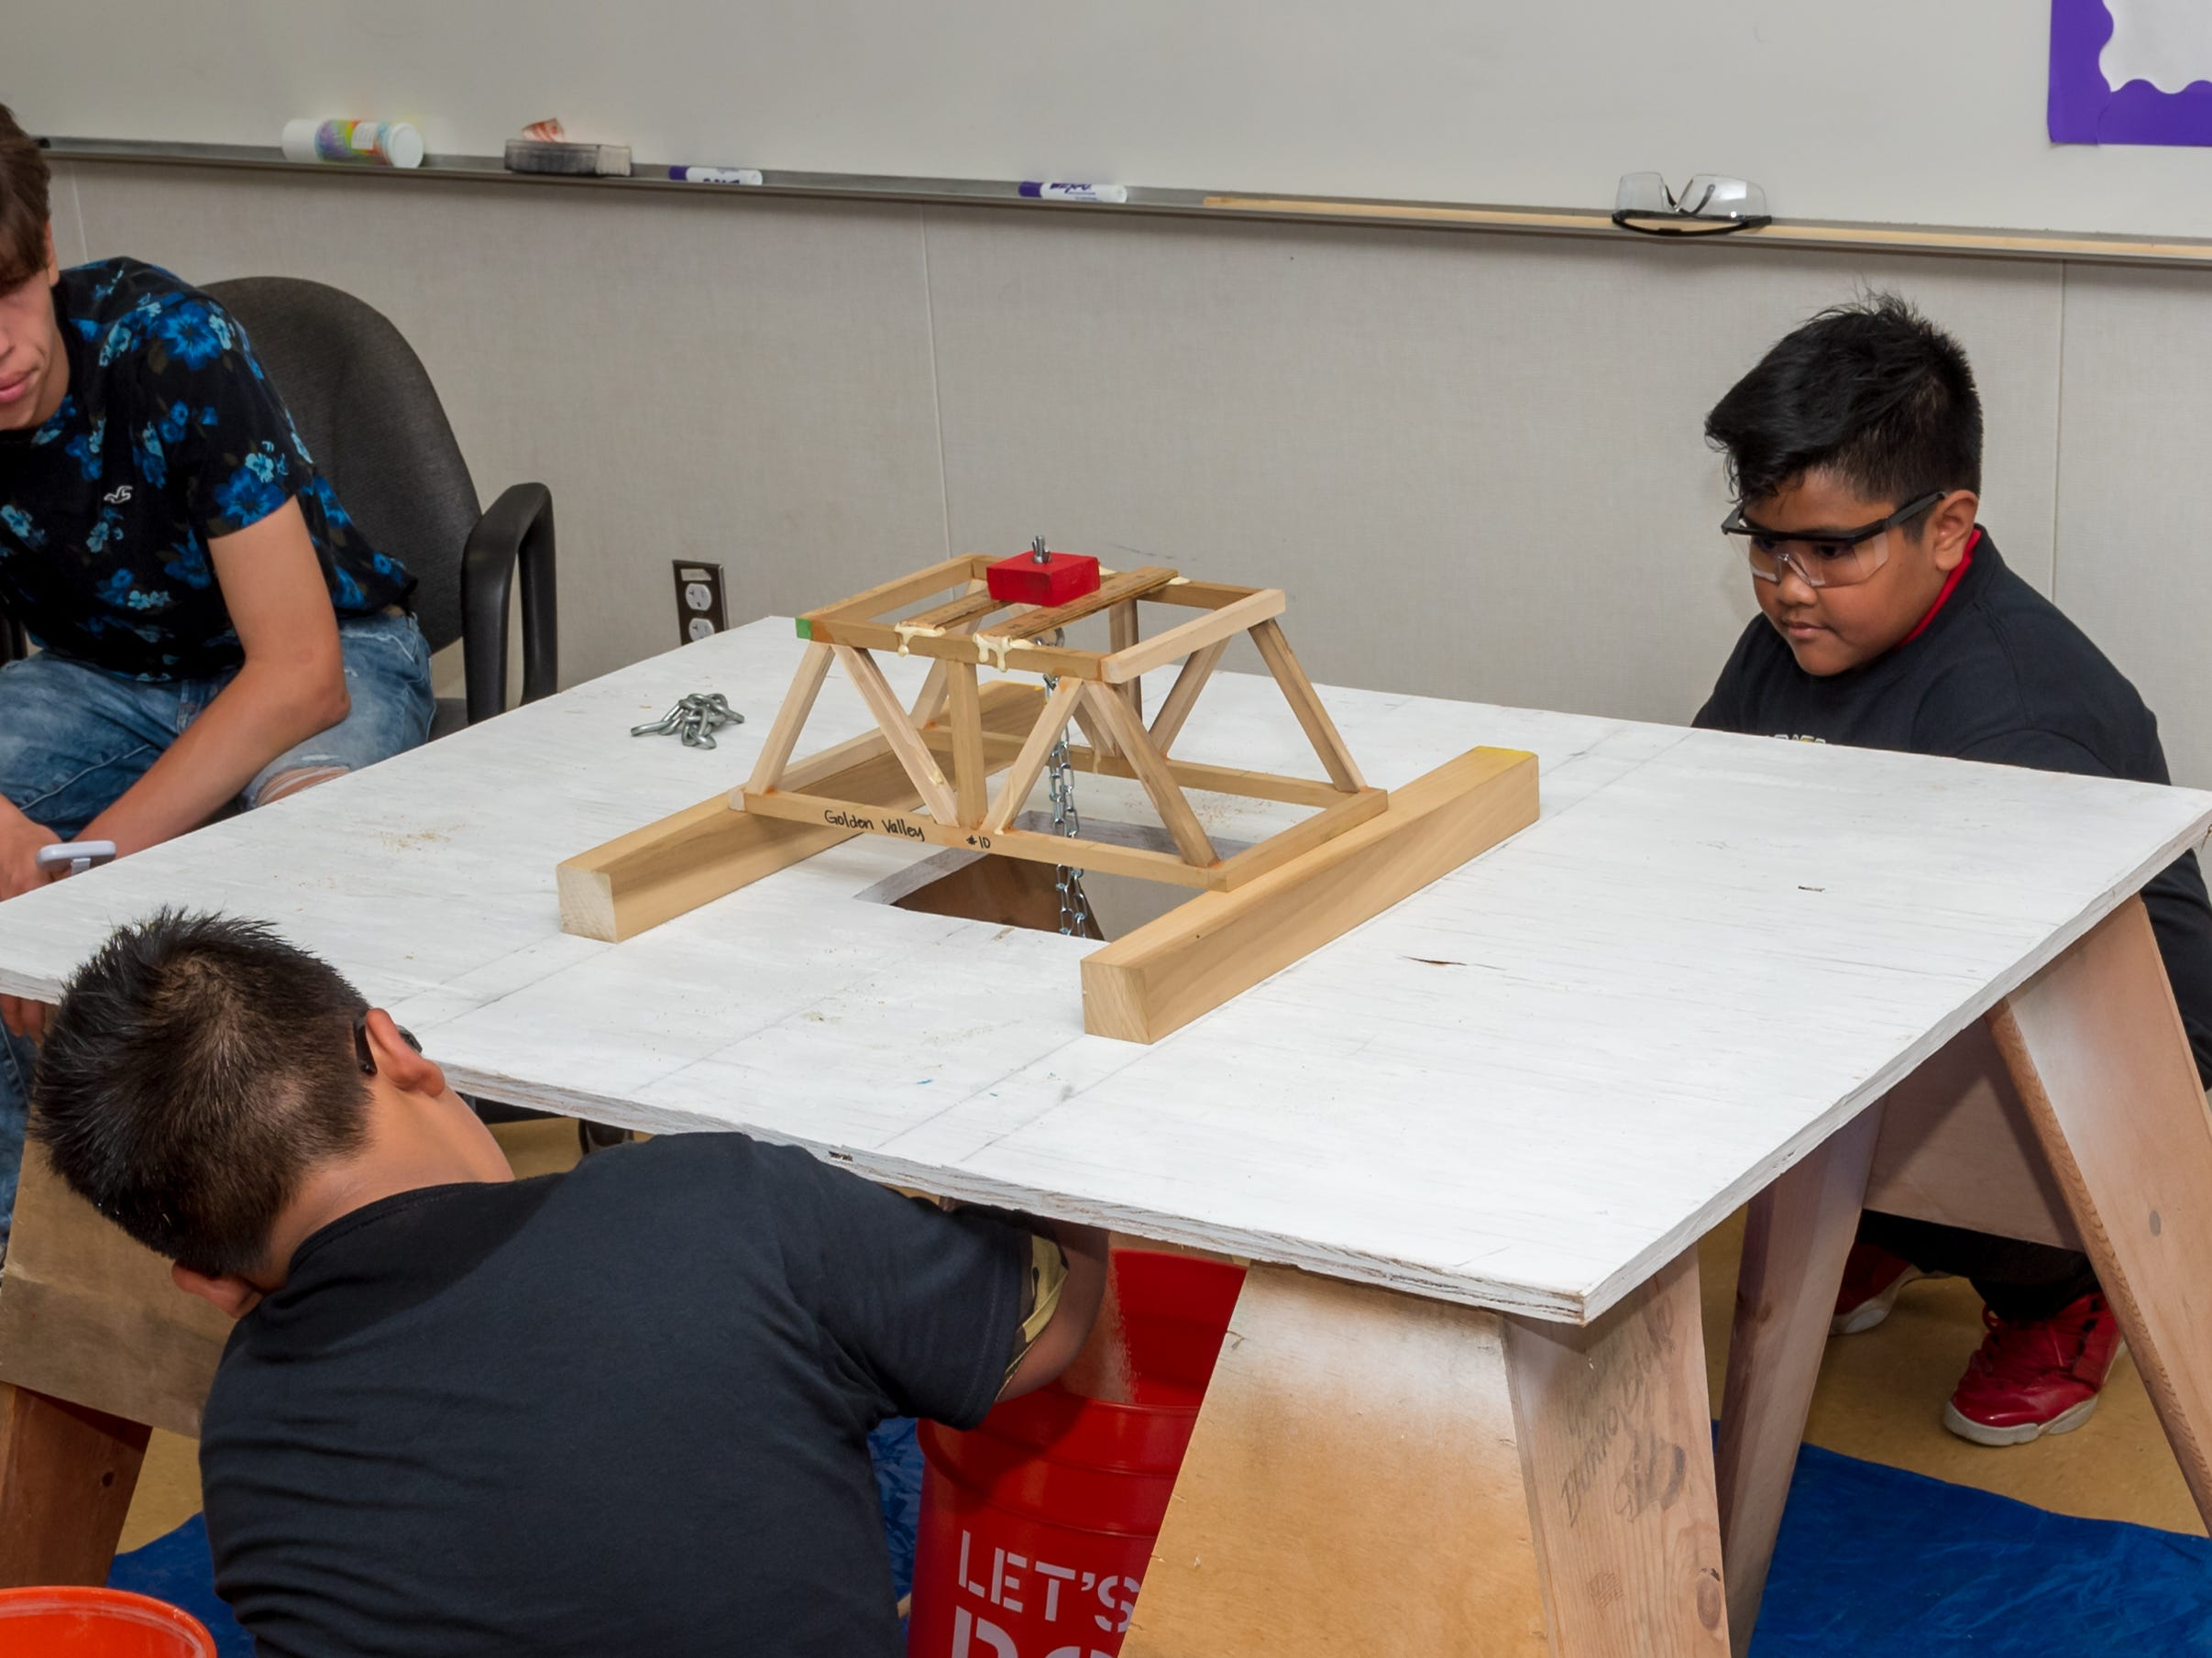 Isiah Calaustro and Renato Carlos compete in the Bridge Building event at the Science Olympiad held at Mission Oak High School in Tulare, Saturday, April. 27, 2019.